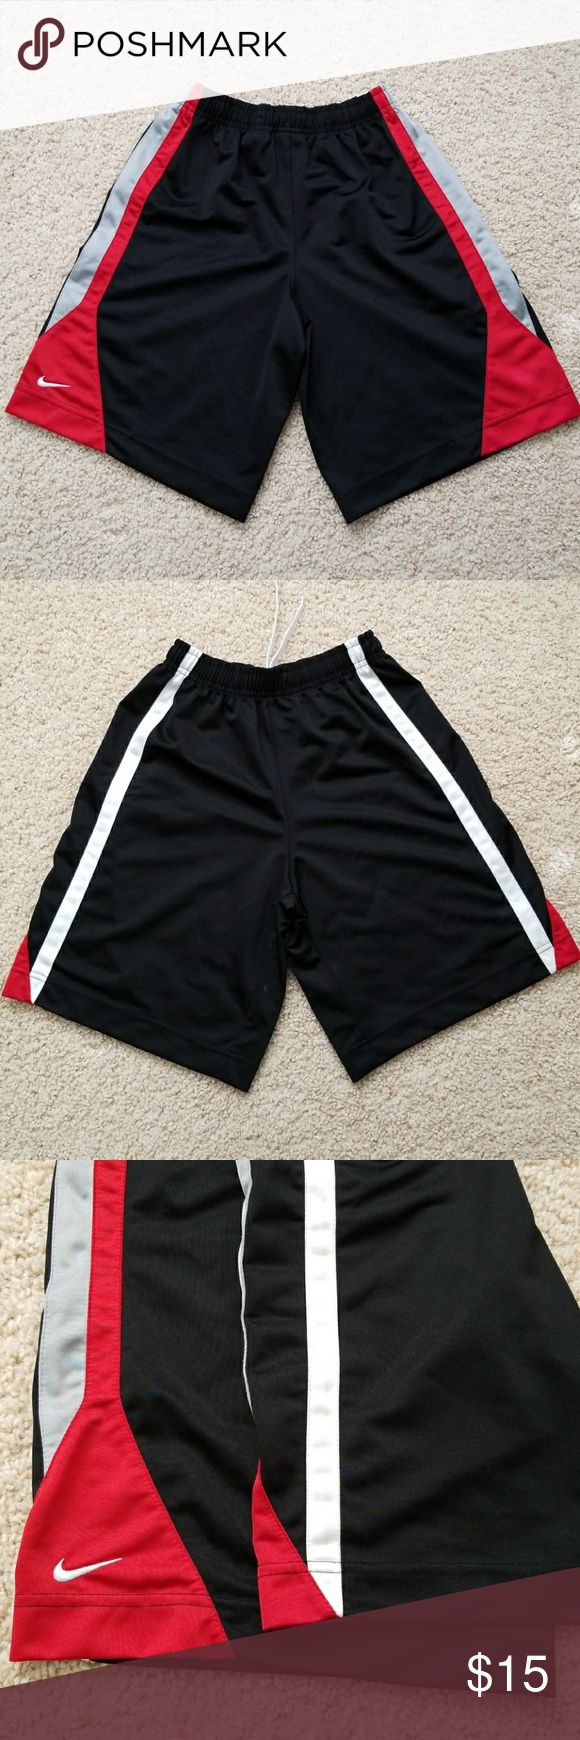 Boys Nike Shorts Boys Nike shorts perfect for sports like basketball and soccer and comfortable enough for everyday use. Multiple colors include black, red, white and Gray. Great condition. Size M 10-12 (boys) Nike Bottoms Shorts